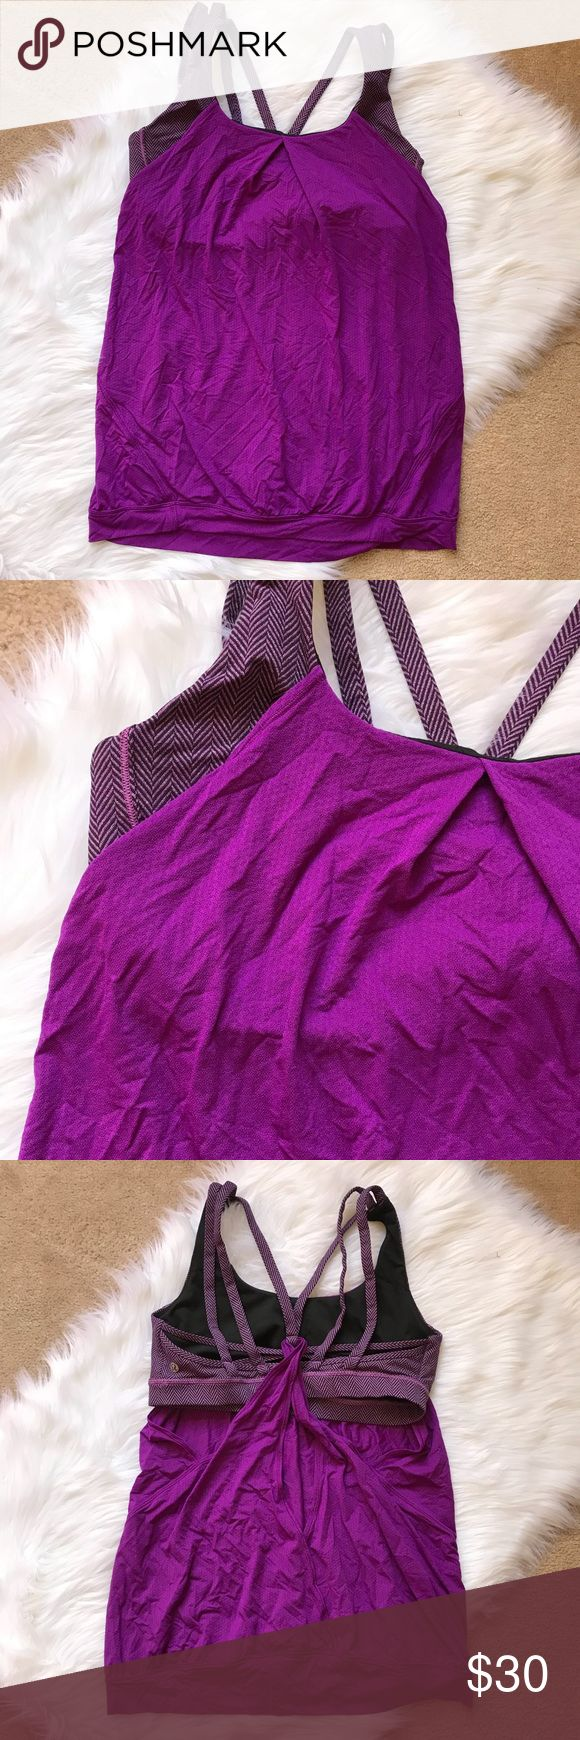 Lululemon Twist Back Tank 12 Lululemon Tank.  Size 12.  Twist open back.  Attached strappy sports bra.  RIDICULOUSLY CUTE!  Solid purple with patterned purple sports bra.  Does not have removable cups.   EUC - no stains, tears or pulls.  Hand washed, hung dry.  Crispy size tag has been removed. lululemon athletica Tops Tank Tops